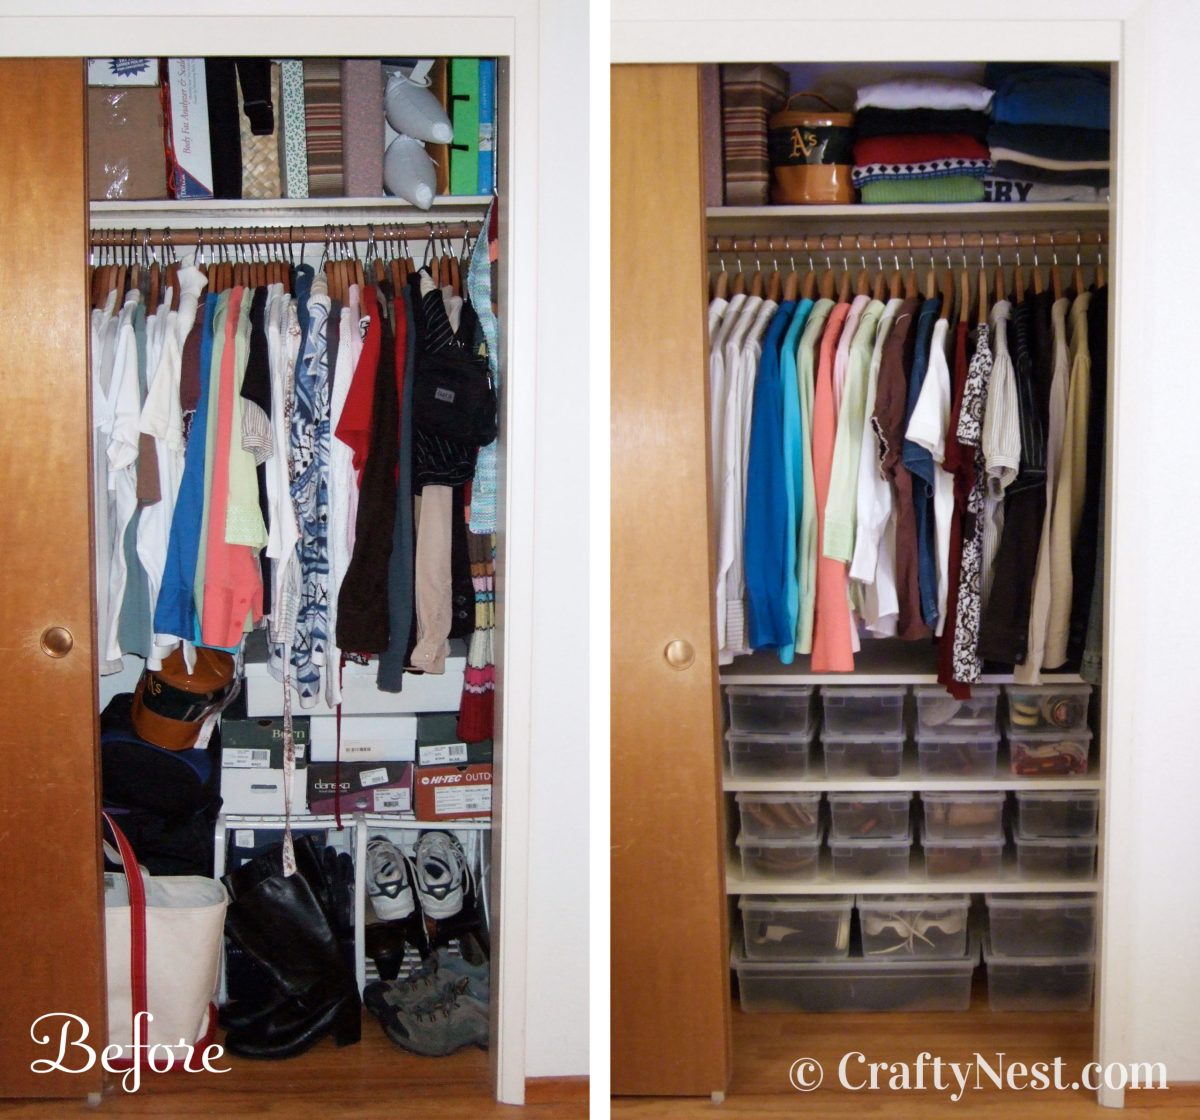 Before and after closet photo